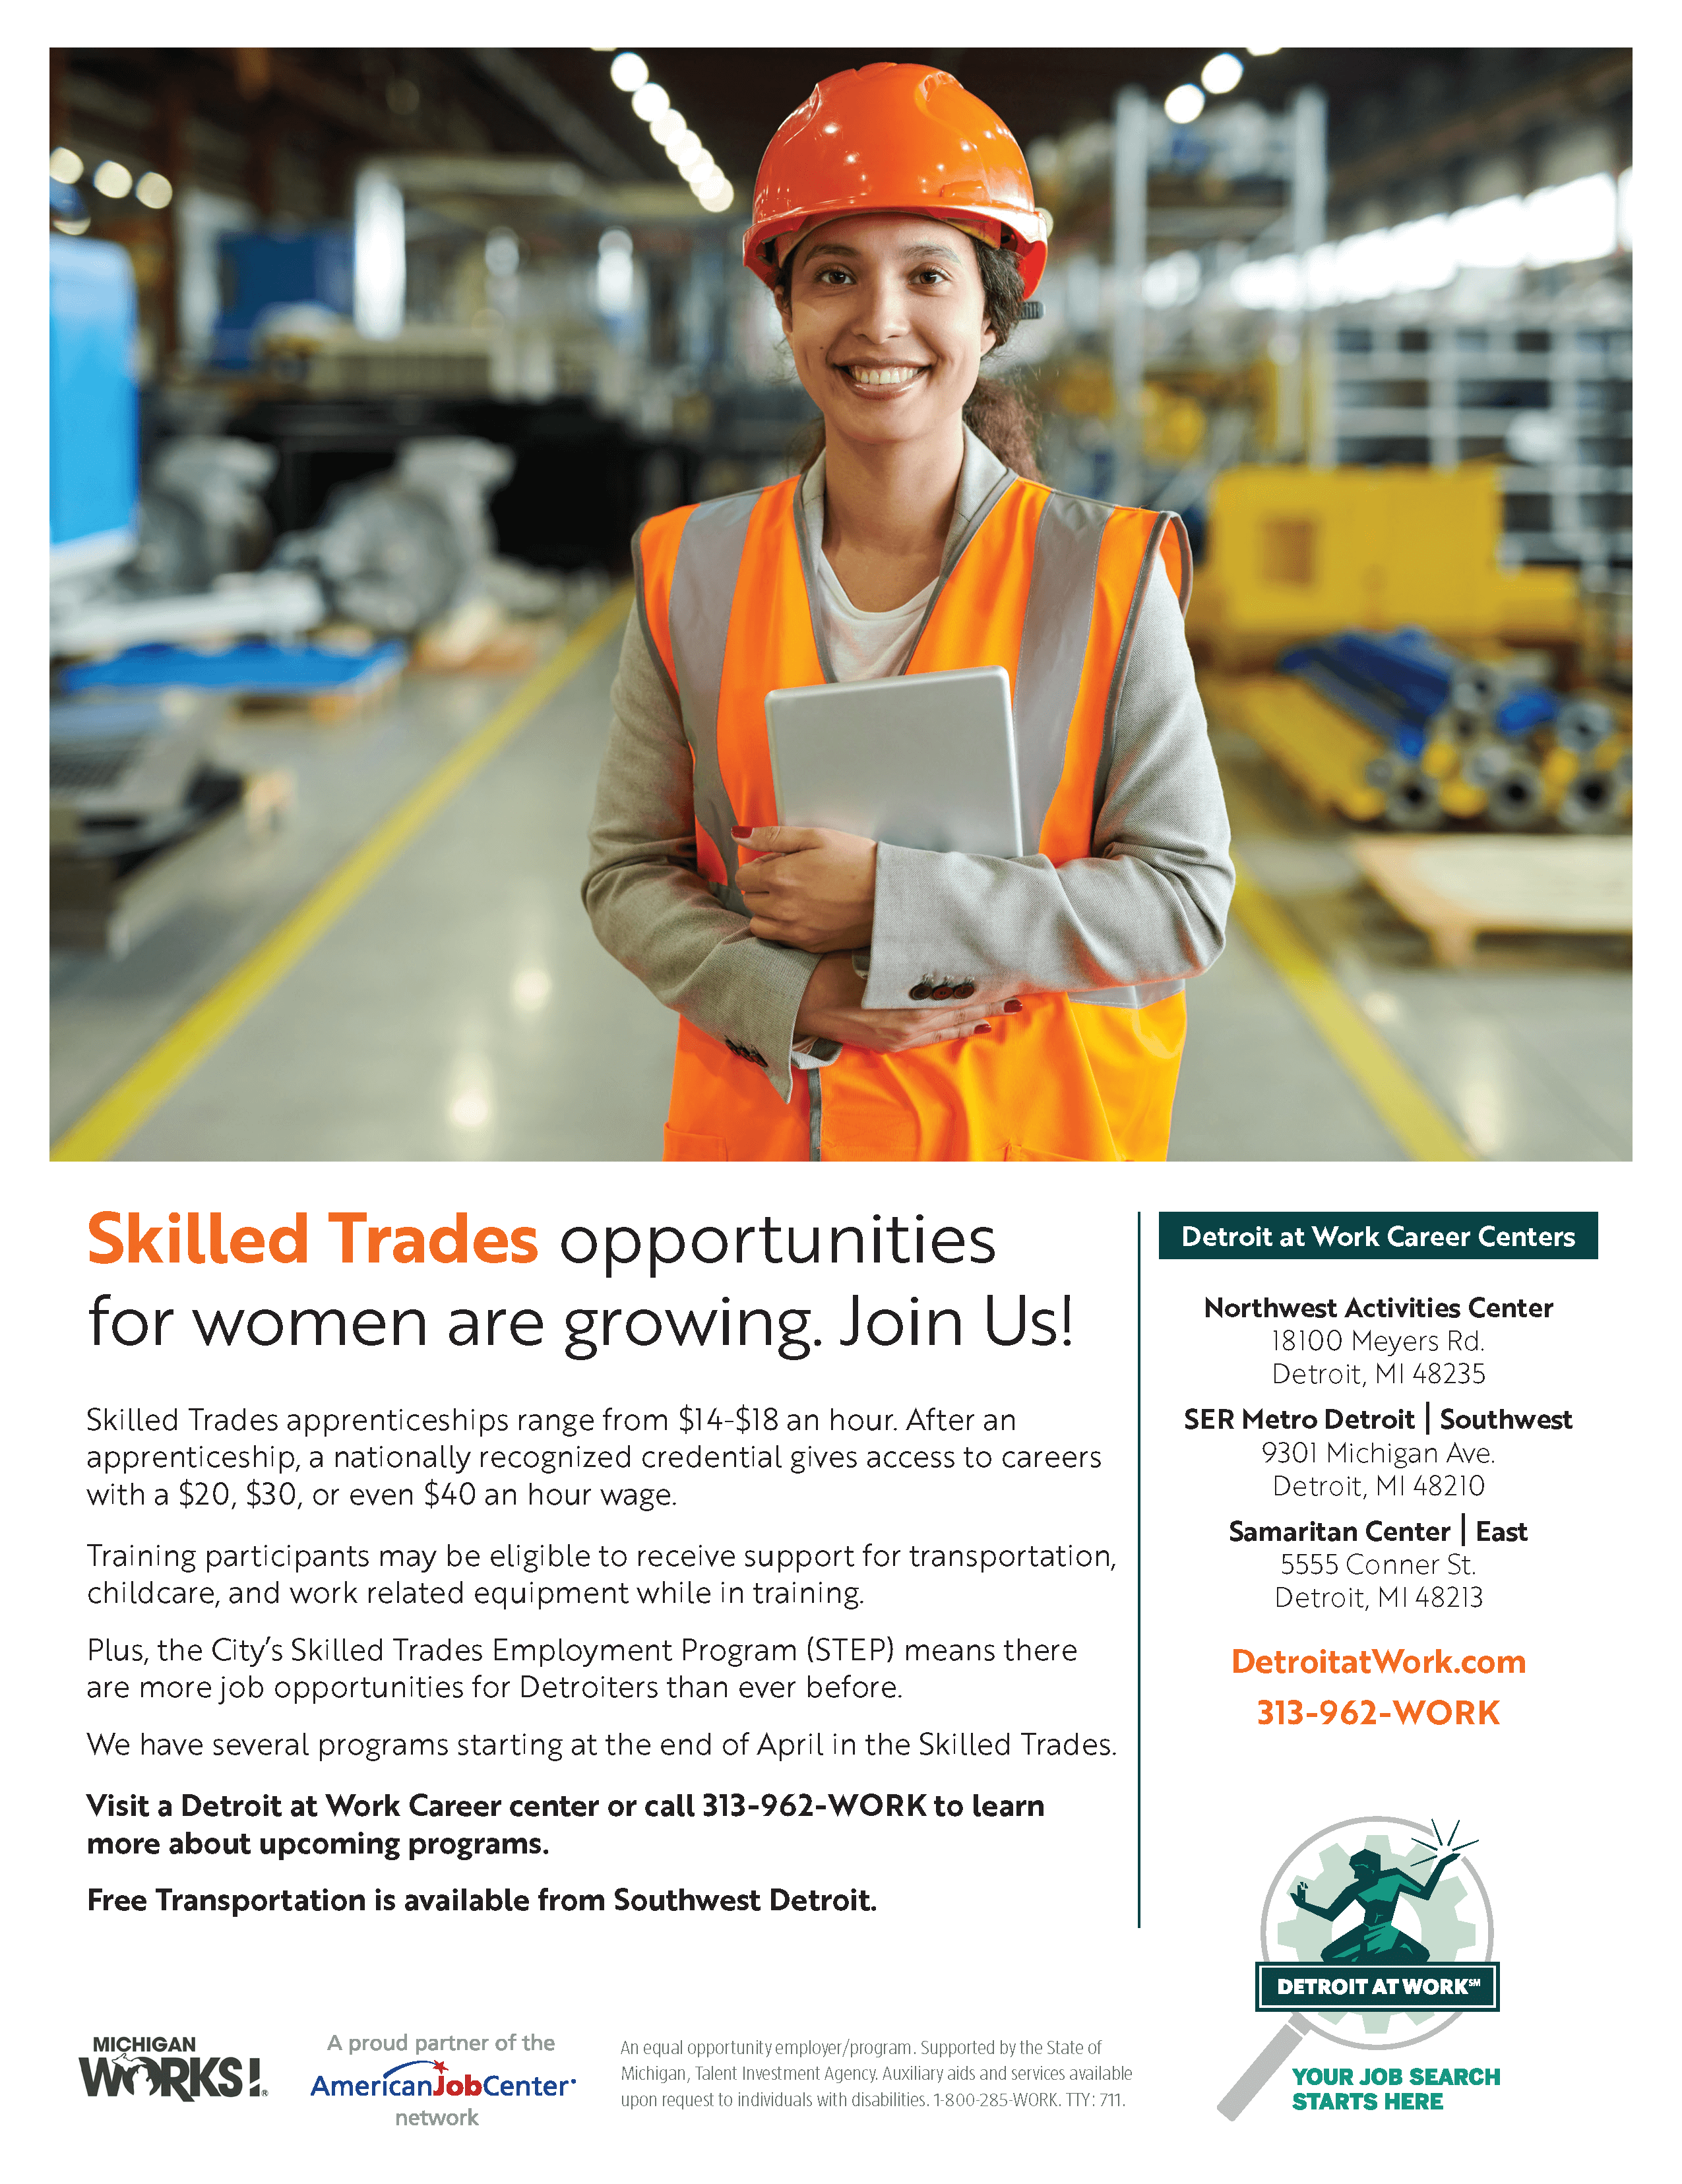 Women in Skilled Trades